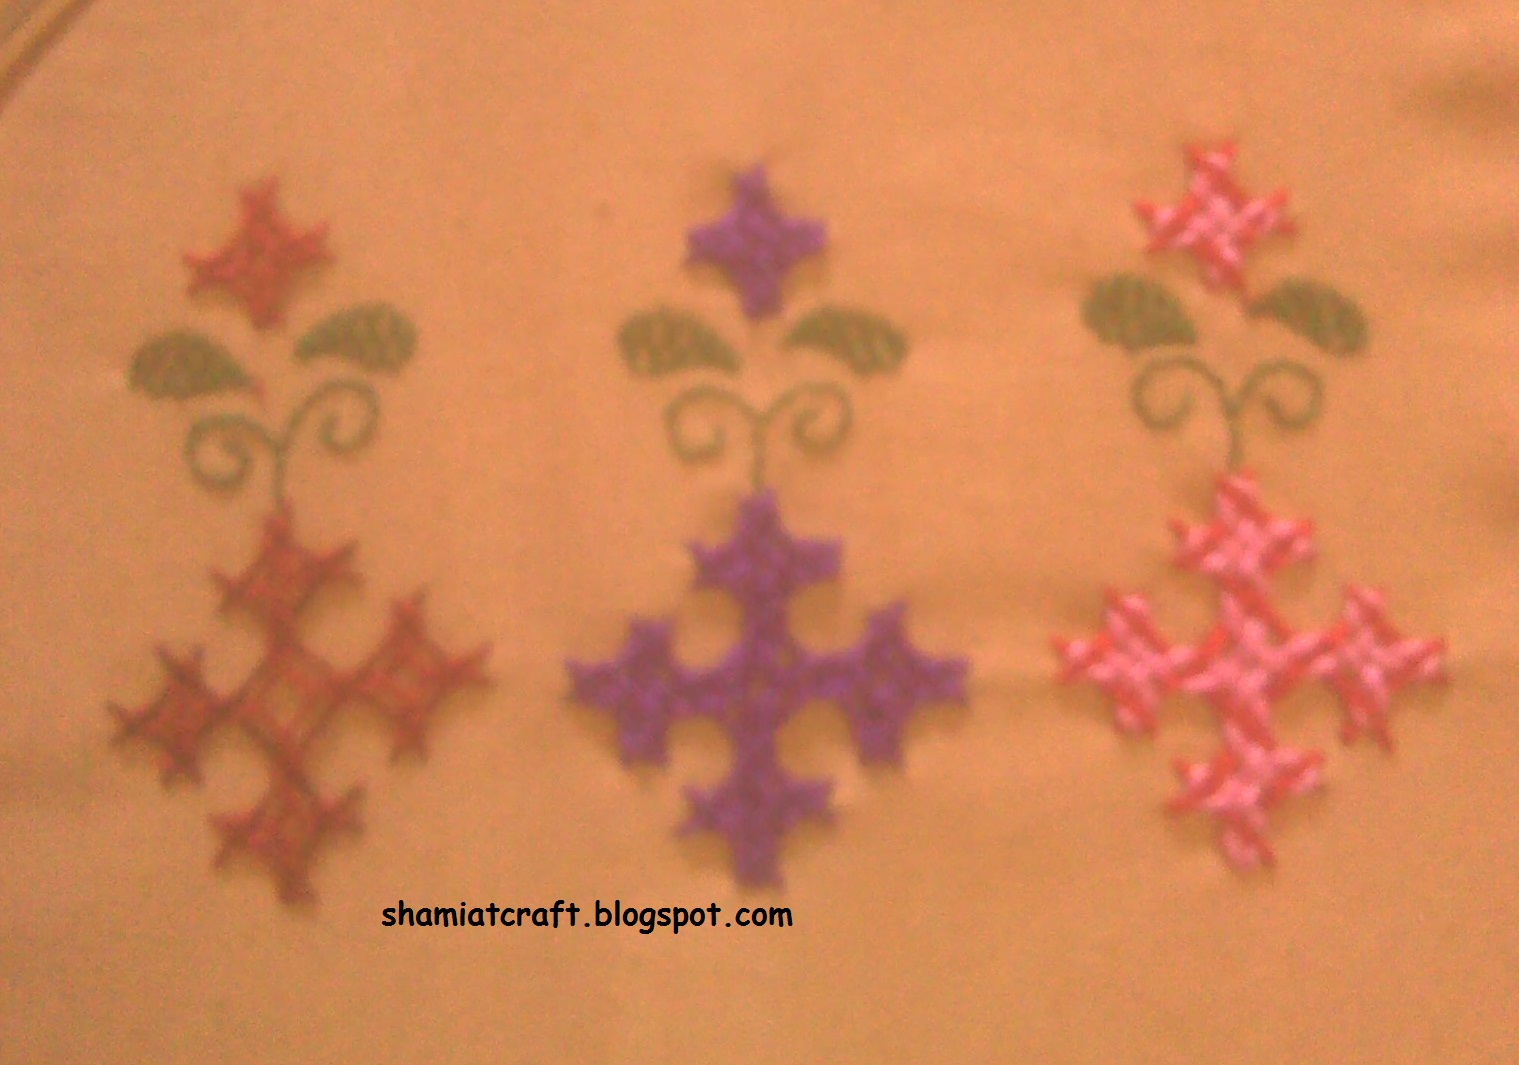 My craft works kutch work trials